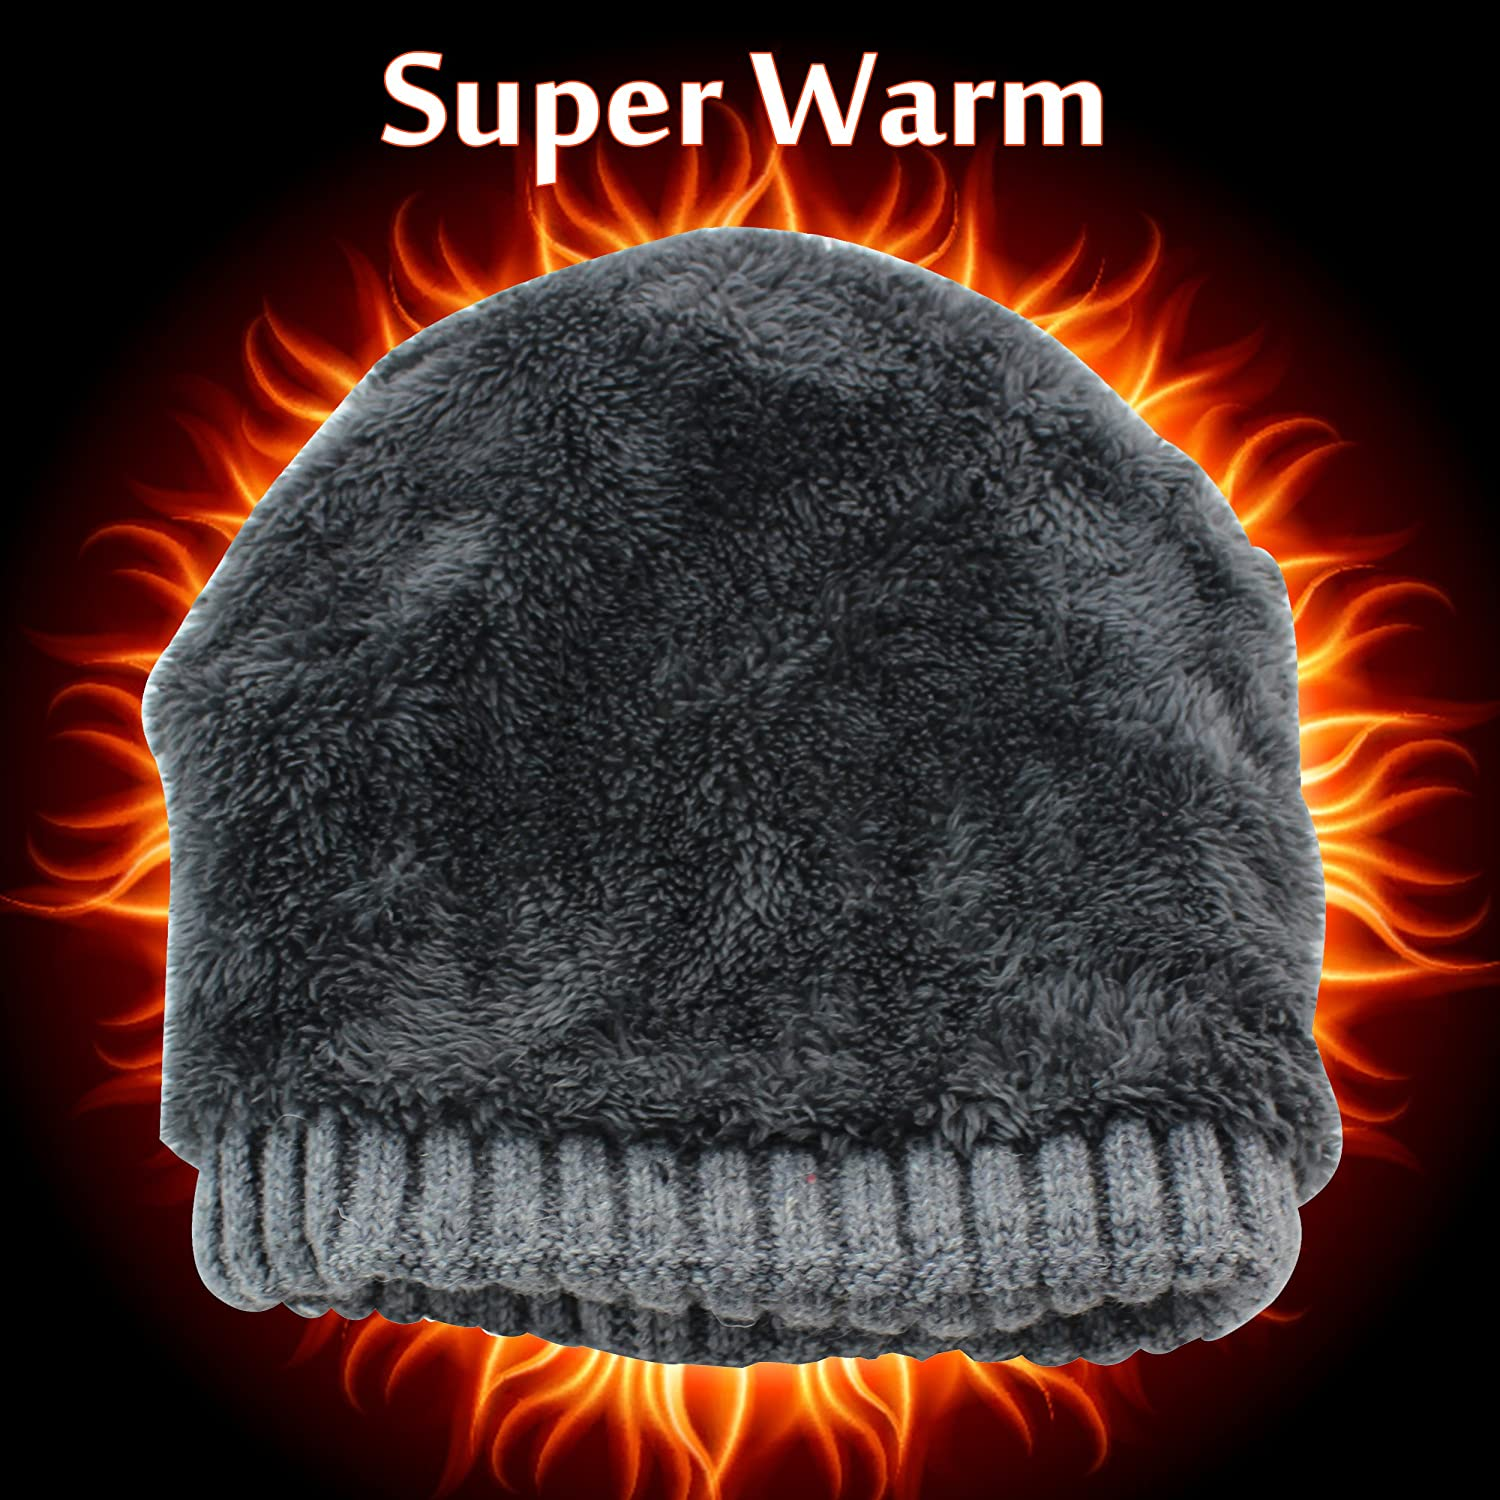 CAMOLAND Mens Fleece Wool Cable Knit Winter Beanie Hat EWH001-BK 91440a80d7ee